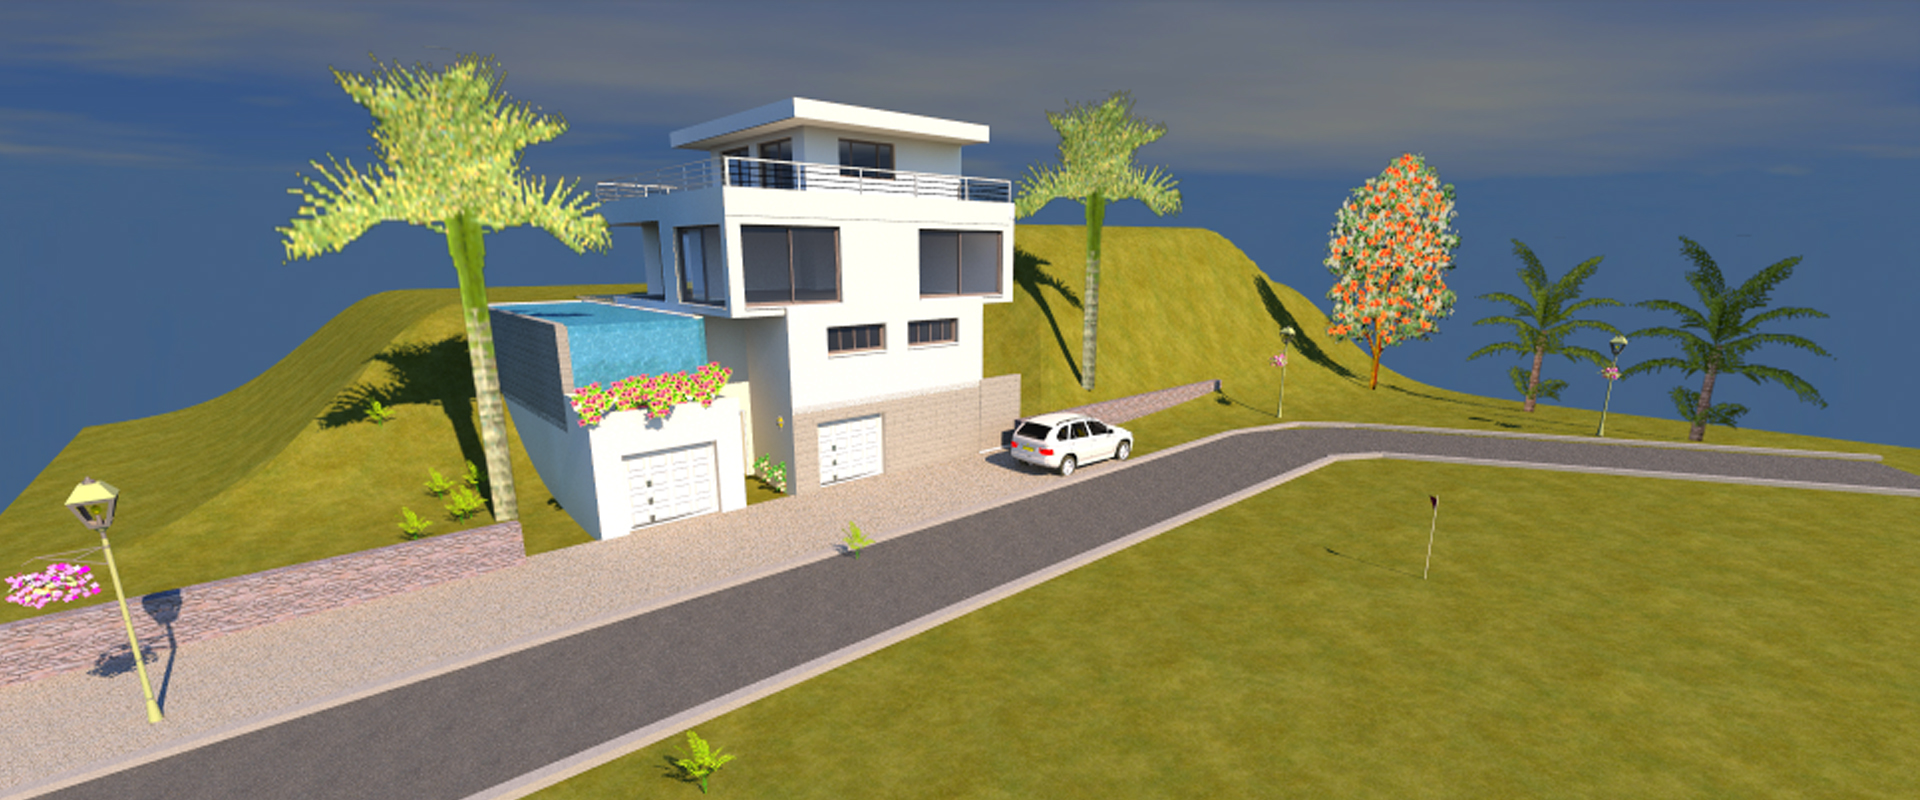 conception-plan-3d-maison-piscine-pays-basque